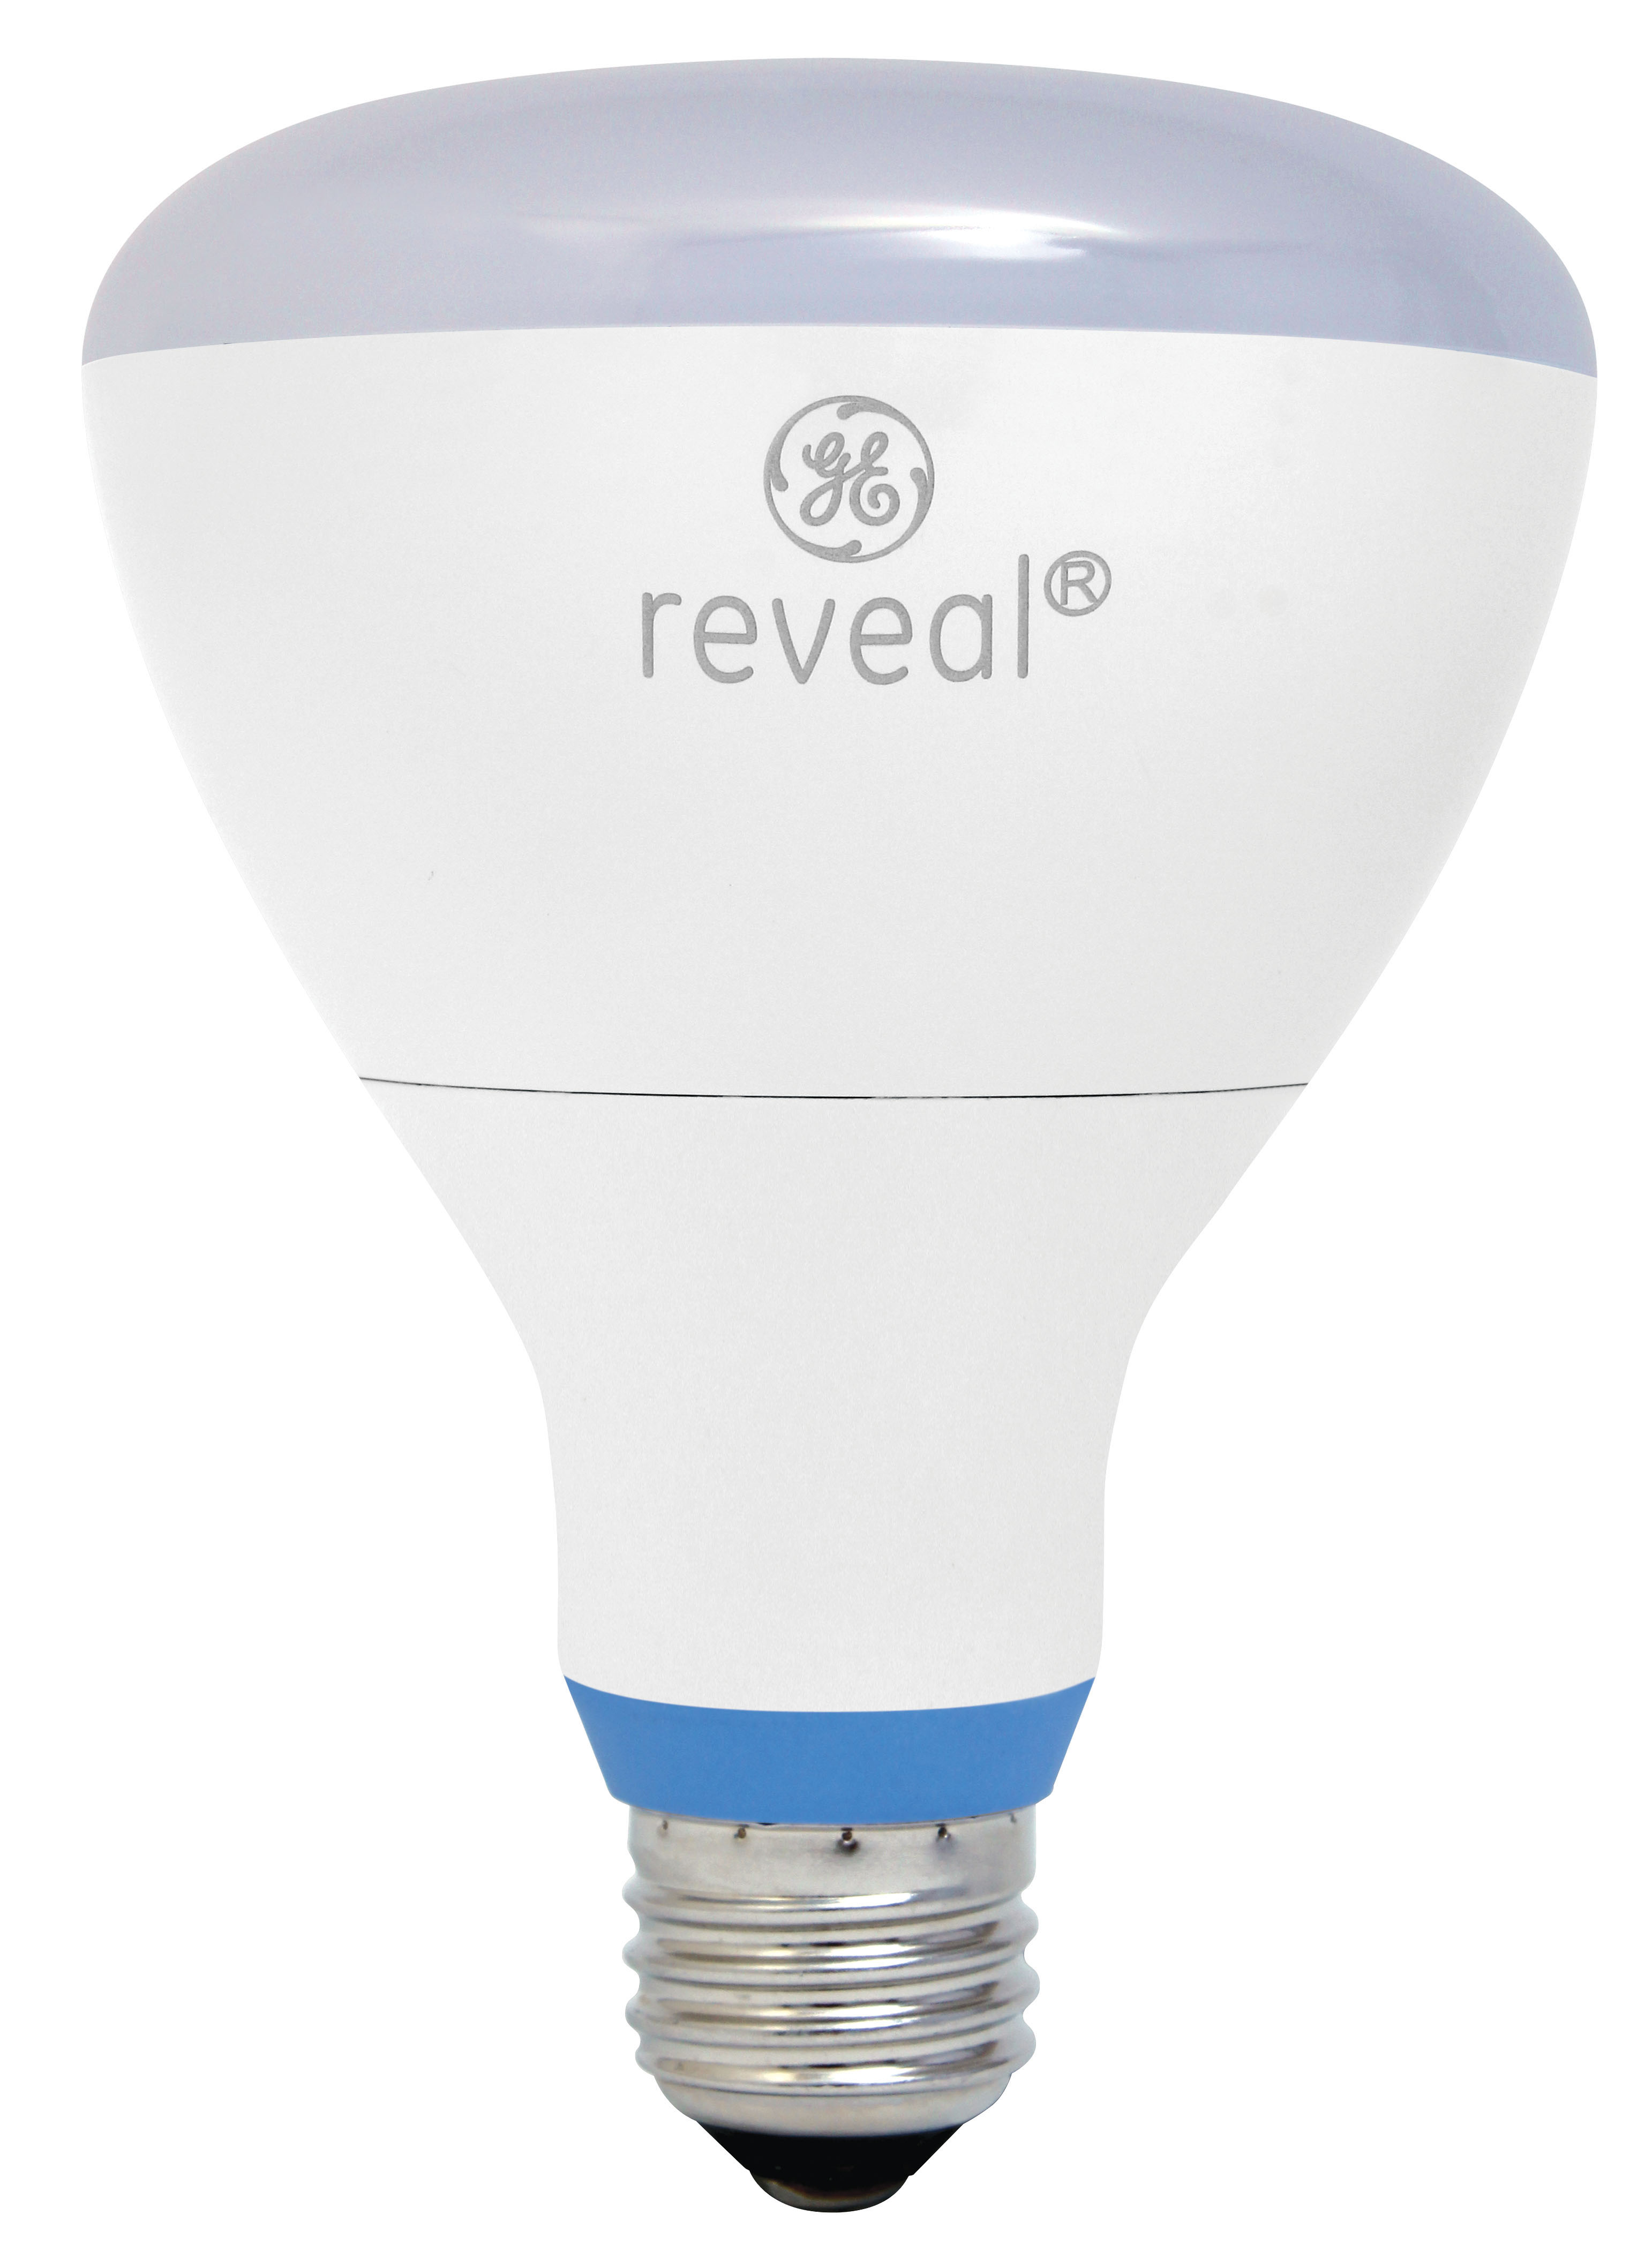 Ge Reveal Led Lighting Provides Energy Efficiency And Beautiful Light Ge Lighting North